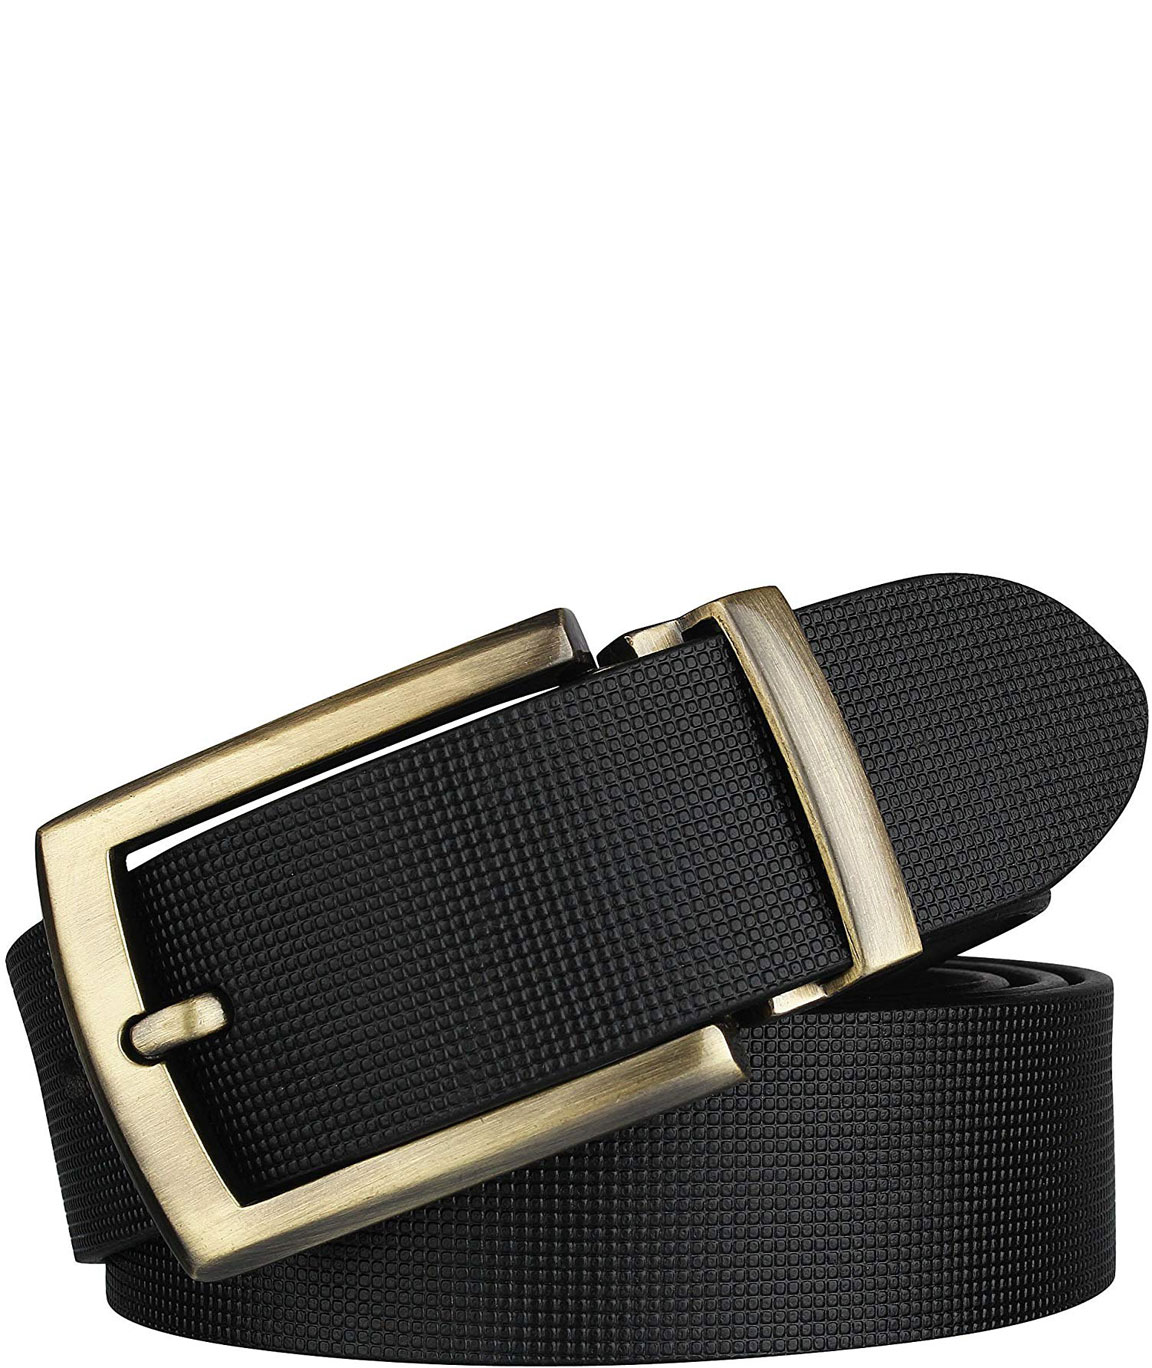 Alfami formal/casual black genuine leather belts for mens- 1 year guarantee Gift for gents BKSQ-05